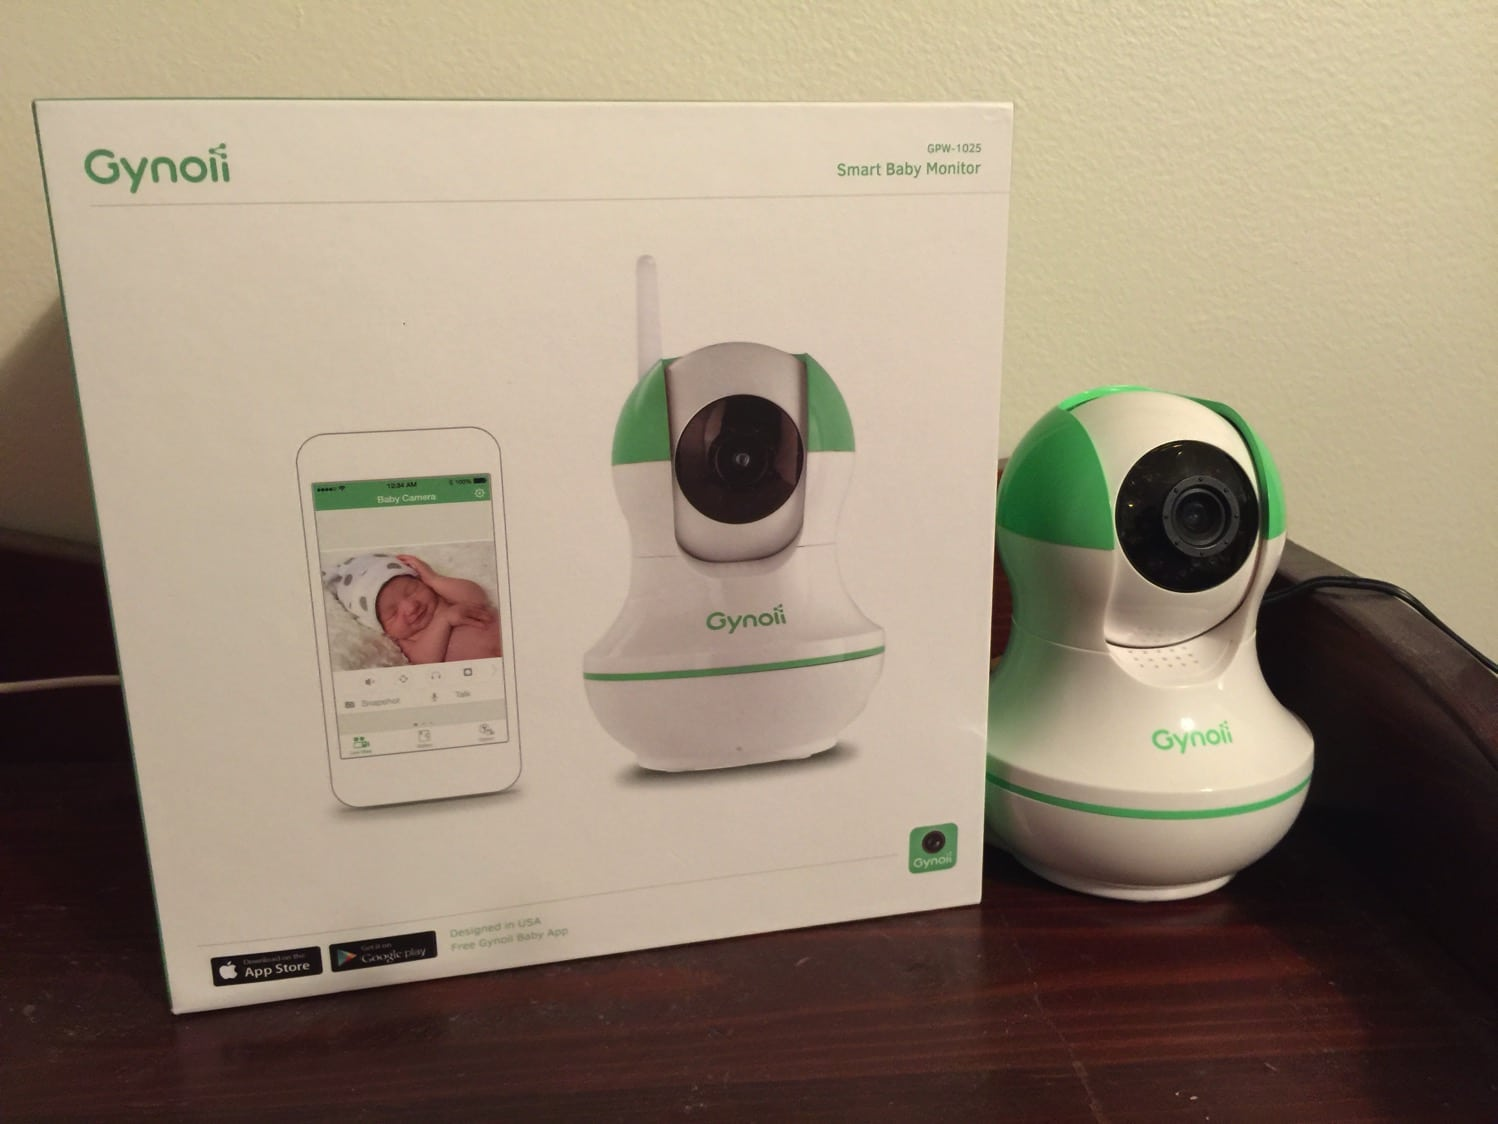 Gynoii WiFi Wireless Pan-Tilt Video Baby Monitor with HD